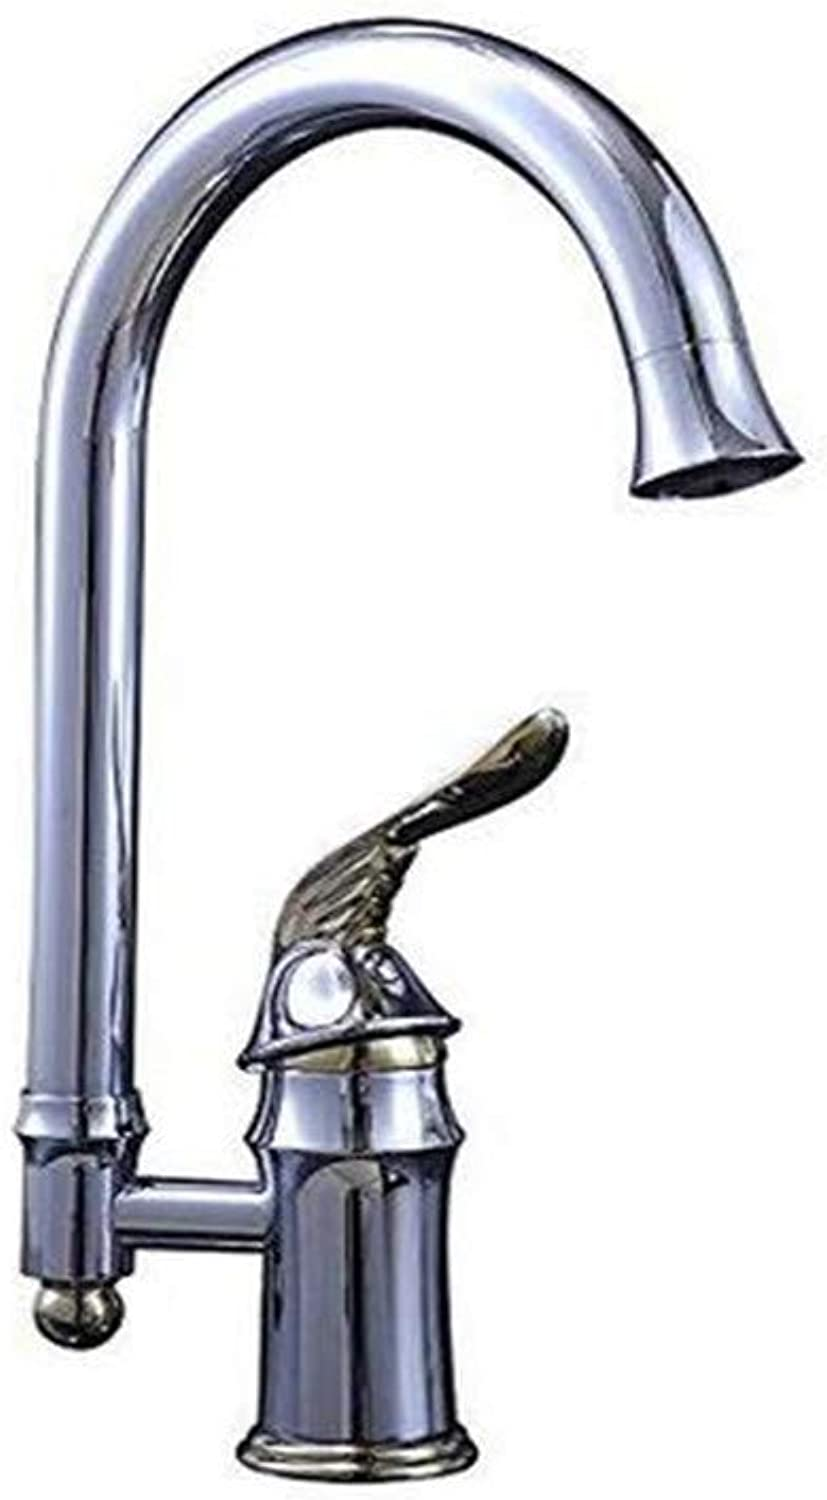 Brass Chrome Vintage Stainless Steel Antique Brass Brushed Bronze 2 Handle Wall Mounted Hot Cold Mixer Toilet Sink Taps